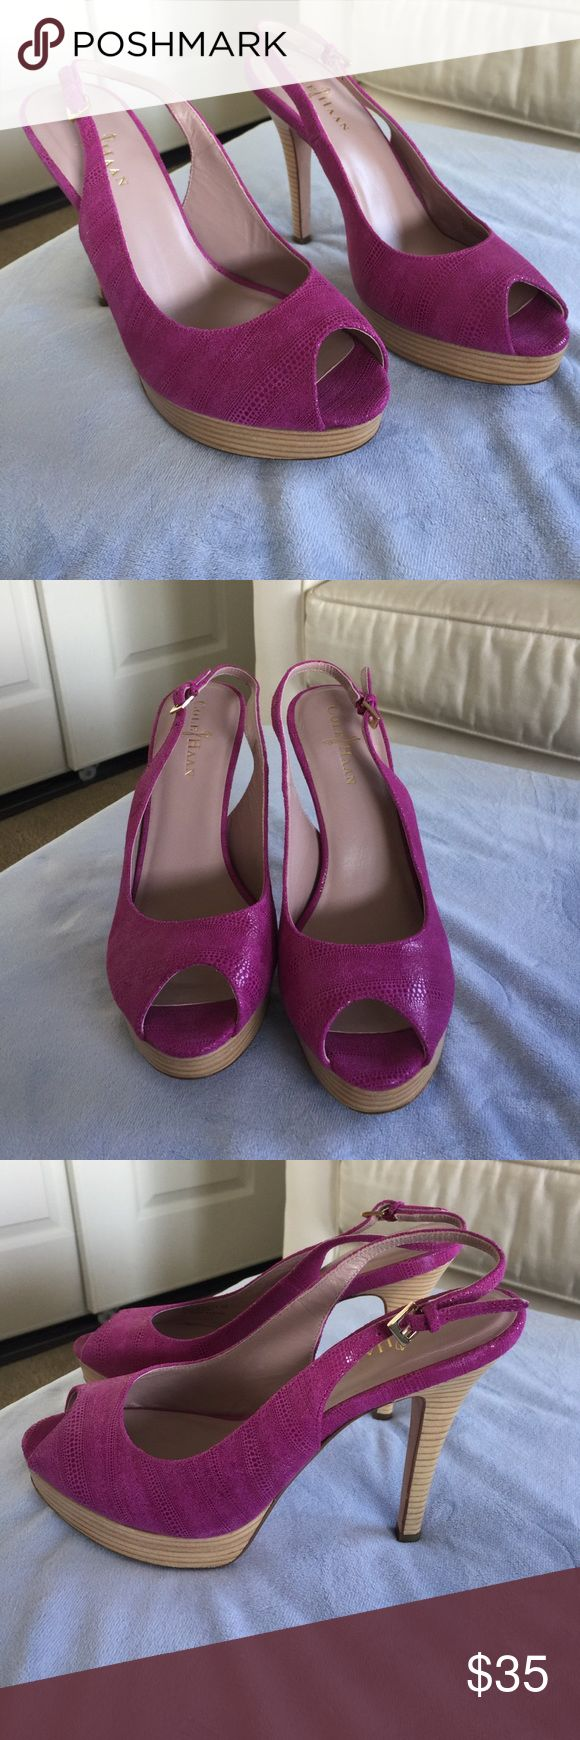 Cole Haan Nike air pink patent leather slug back 8 Cole Hana Nike air pick patent leather slit backs size 8 EUC any wear and tear is pictured Cole Haan Shoes Heels